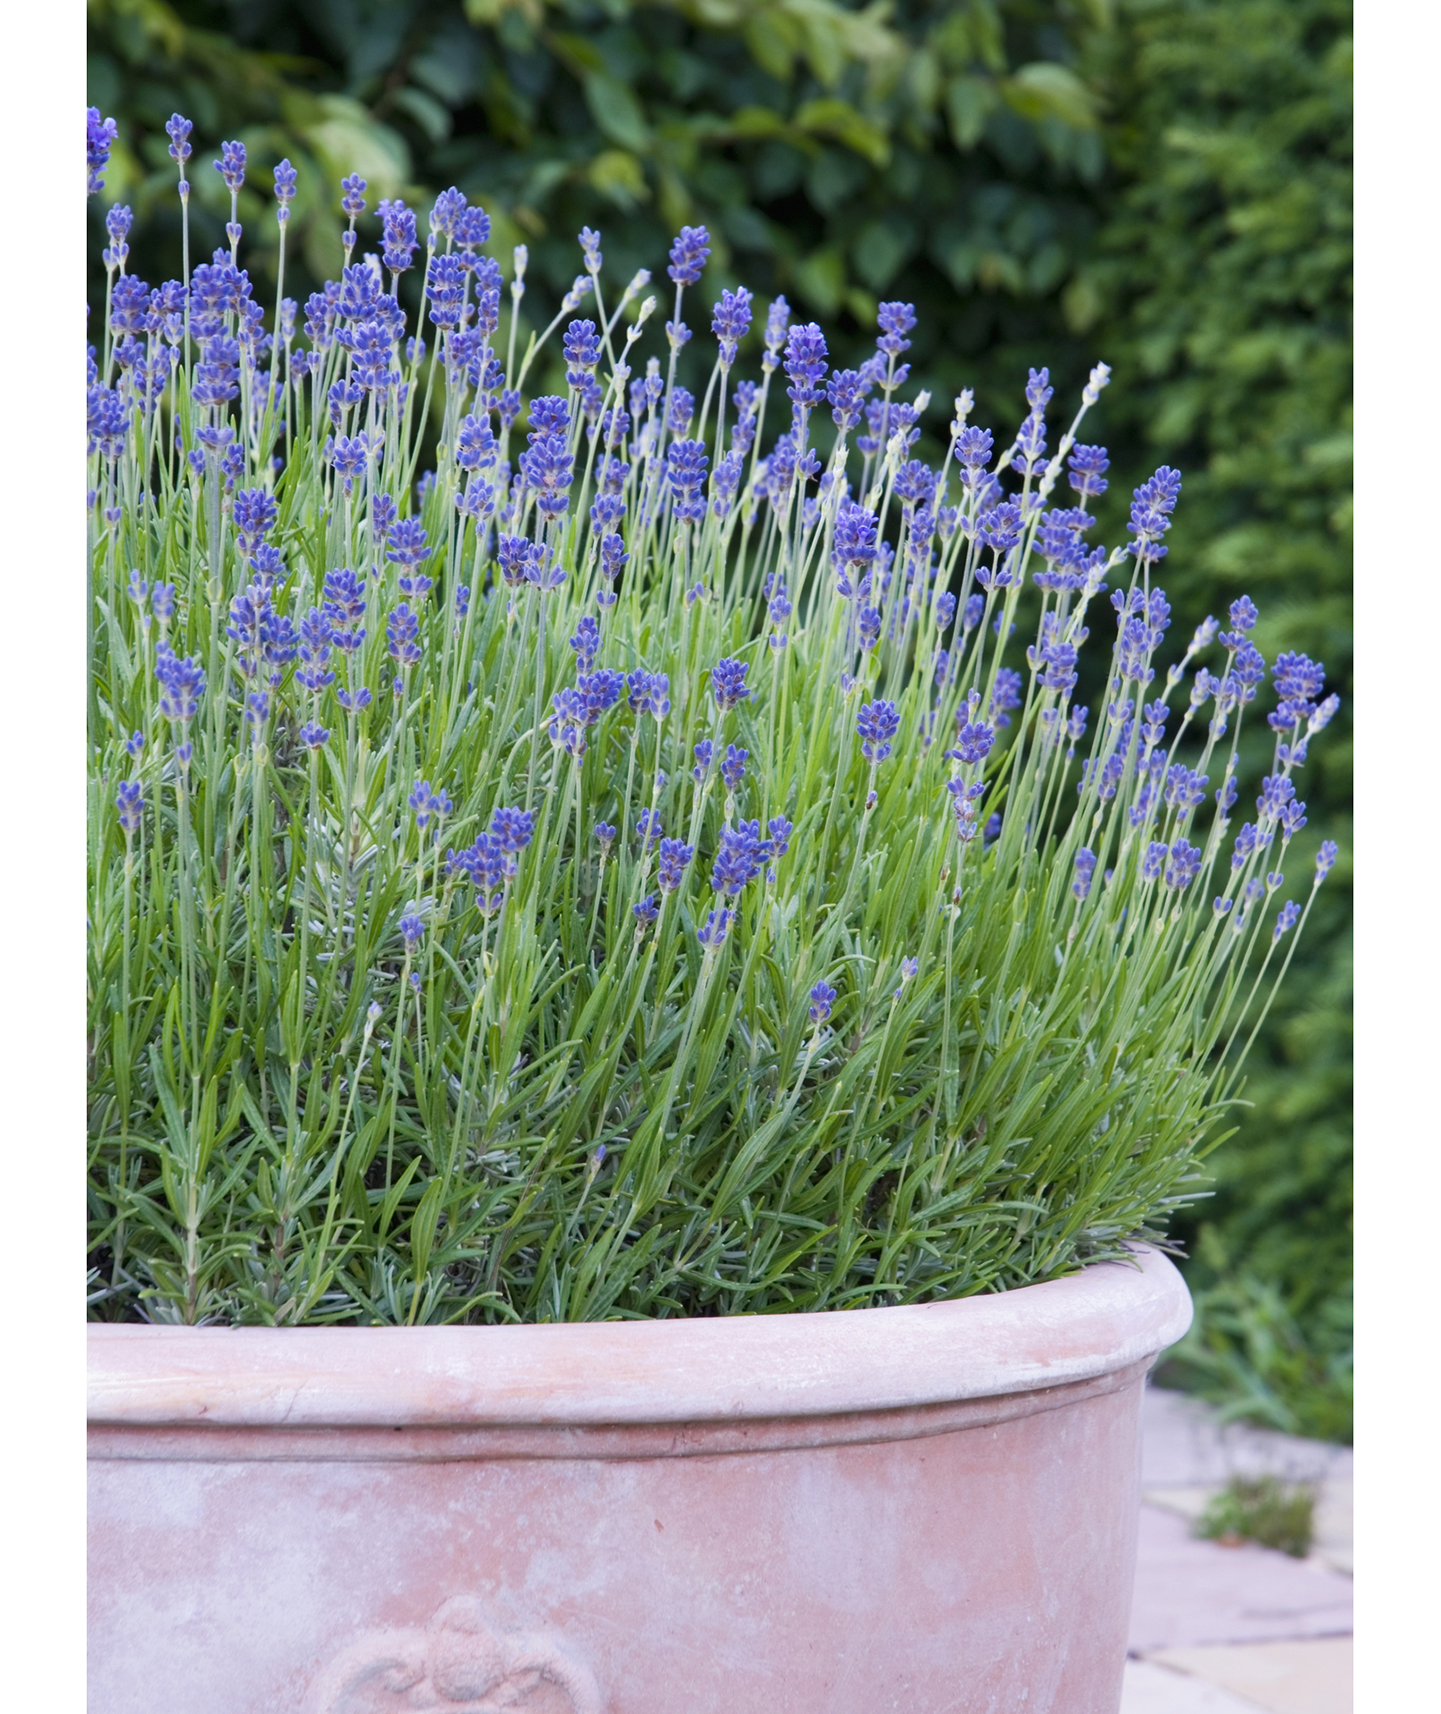 Lavender in container